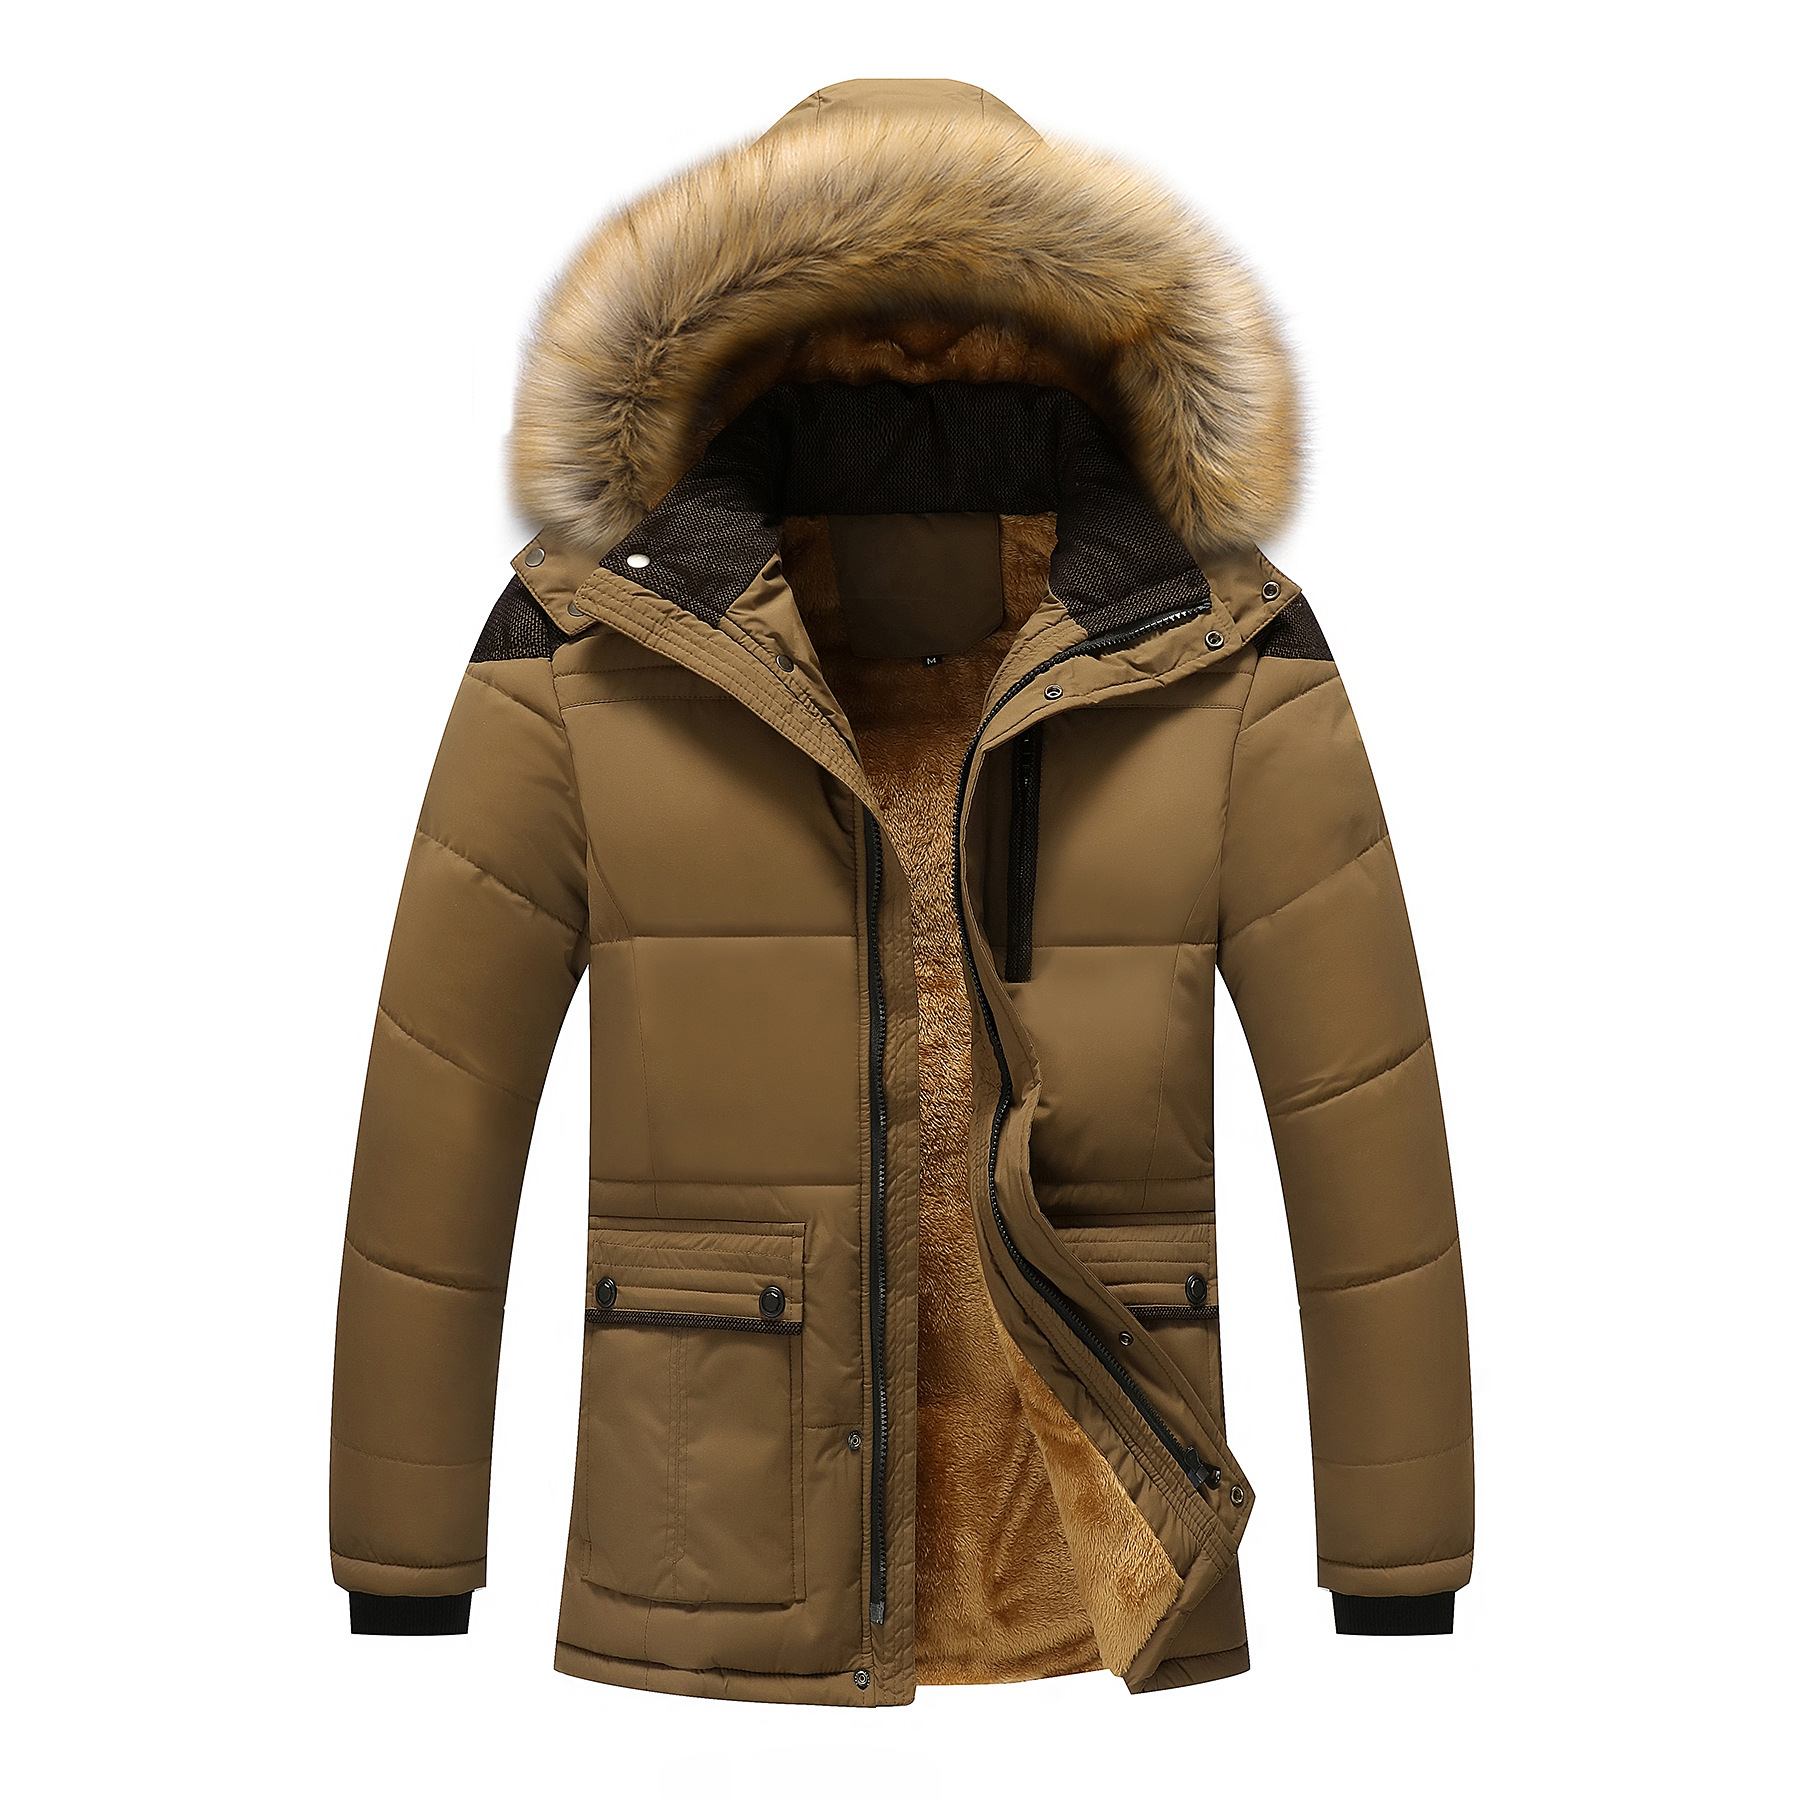 M-5XL Fur Collar Hooded Men Winter Jacket 2019 New Fashion Warm Wool Liner Man Jacket and Coat Windproof Male Parkas casaco